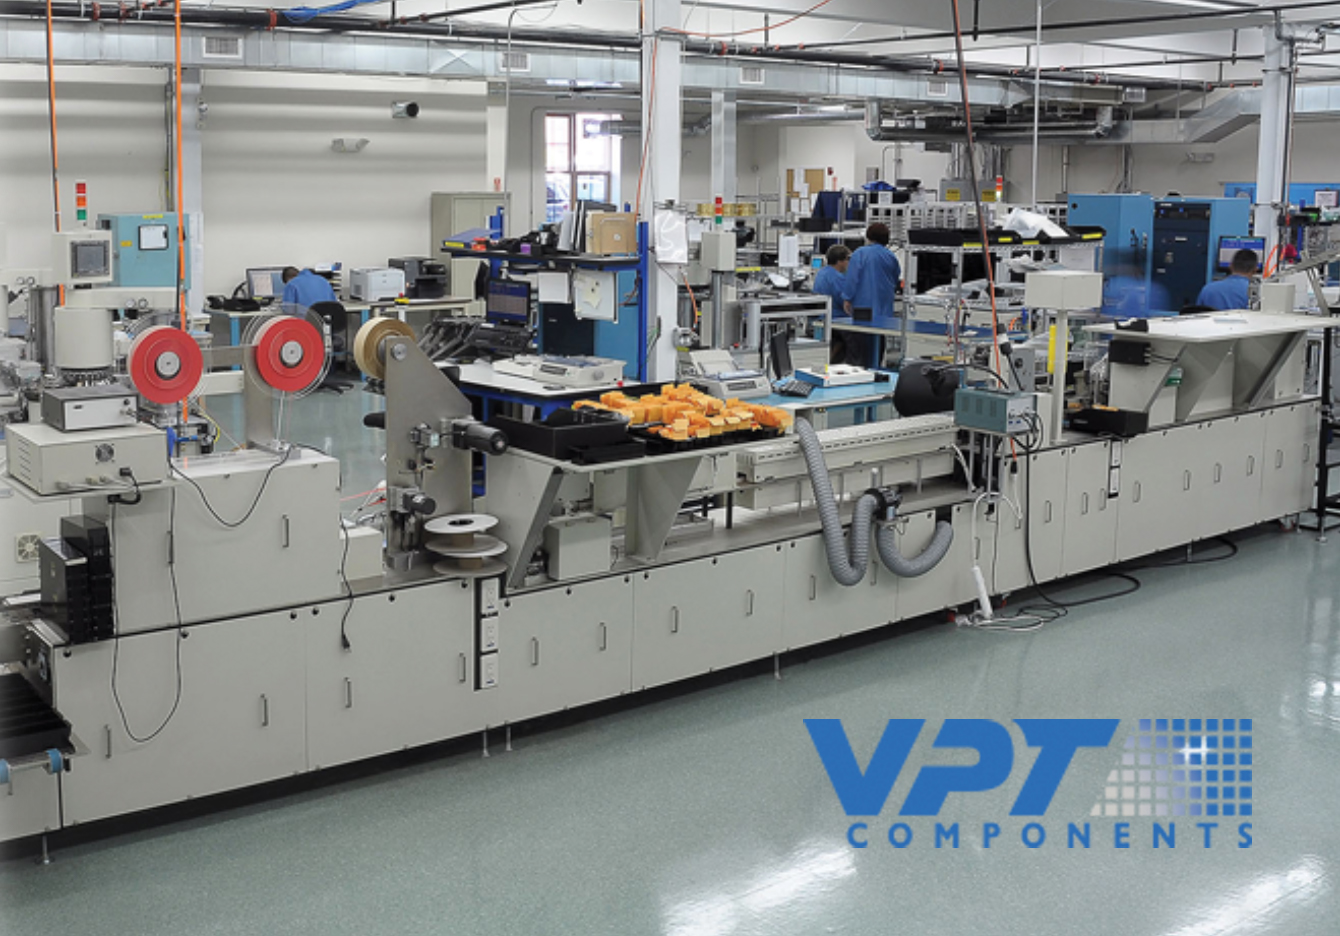 VPT components authorized distributor